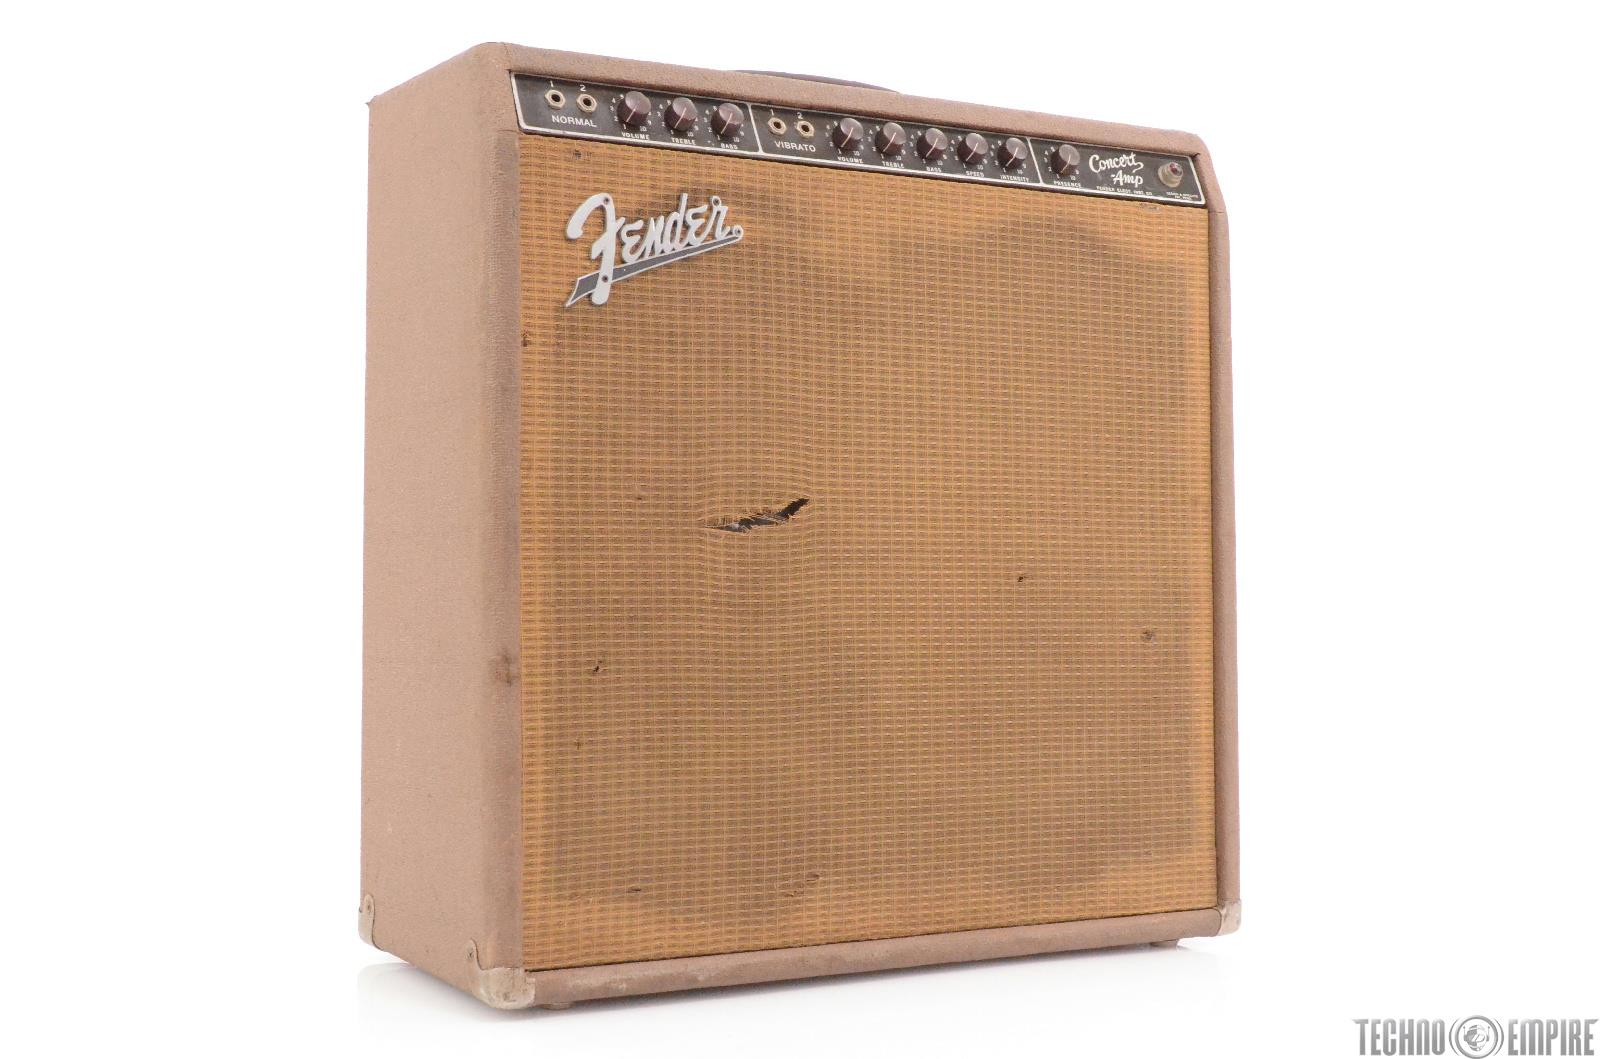 1962 Fender Concert Amp 6G12 Brownface Tube Amplifier 4x10 Combo Serviced 28918 X